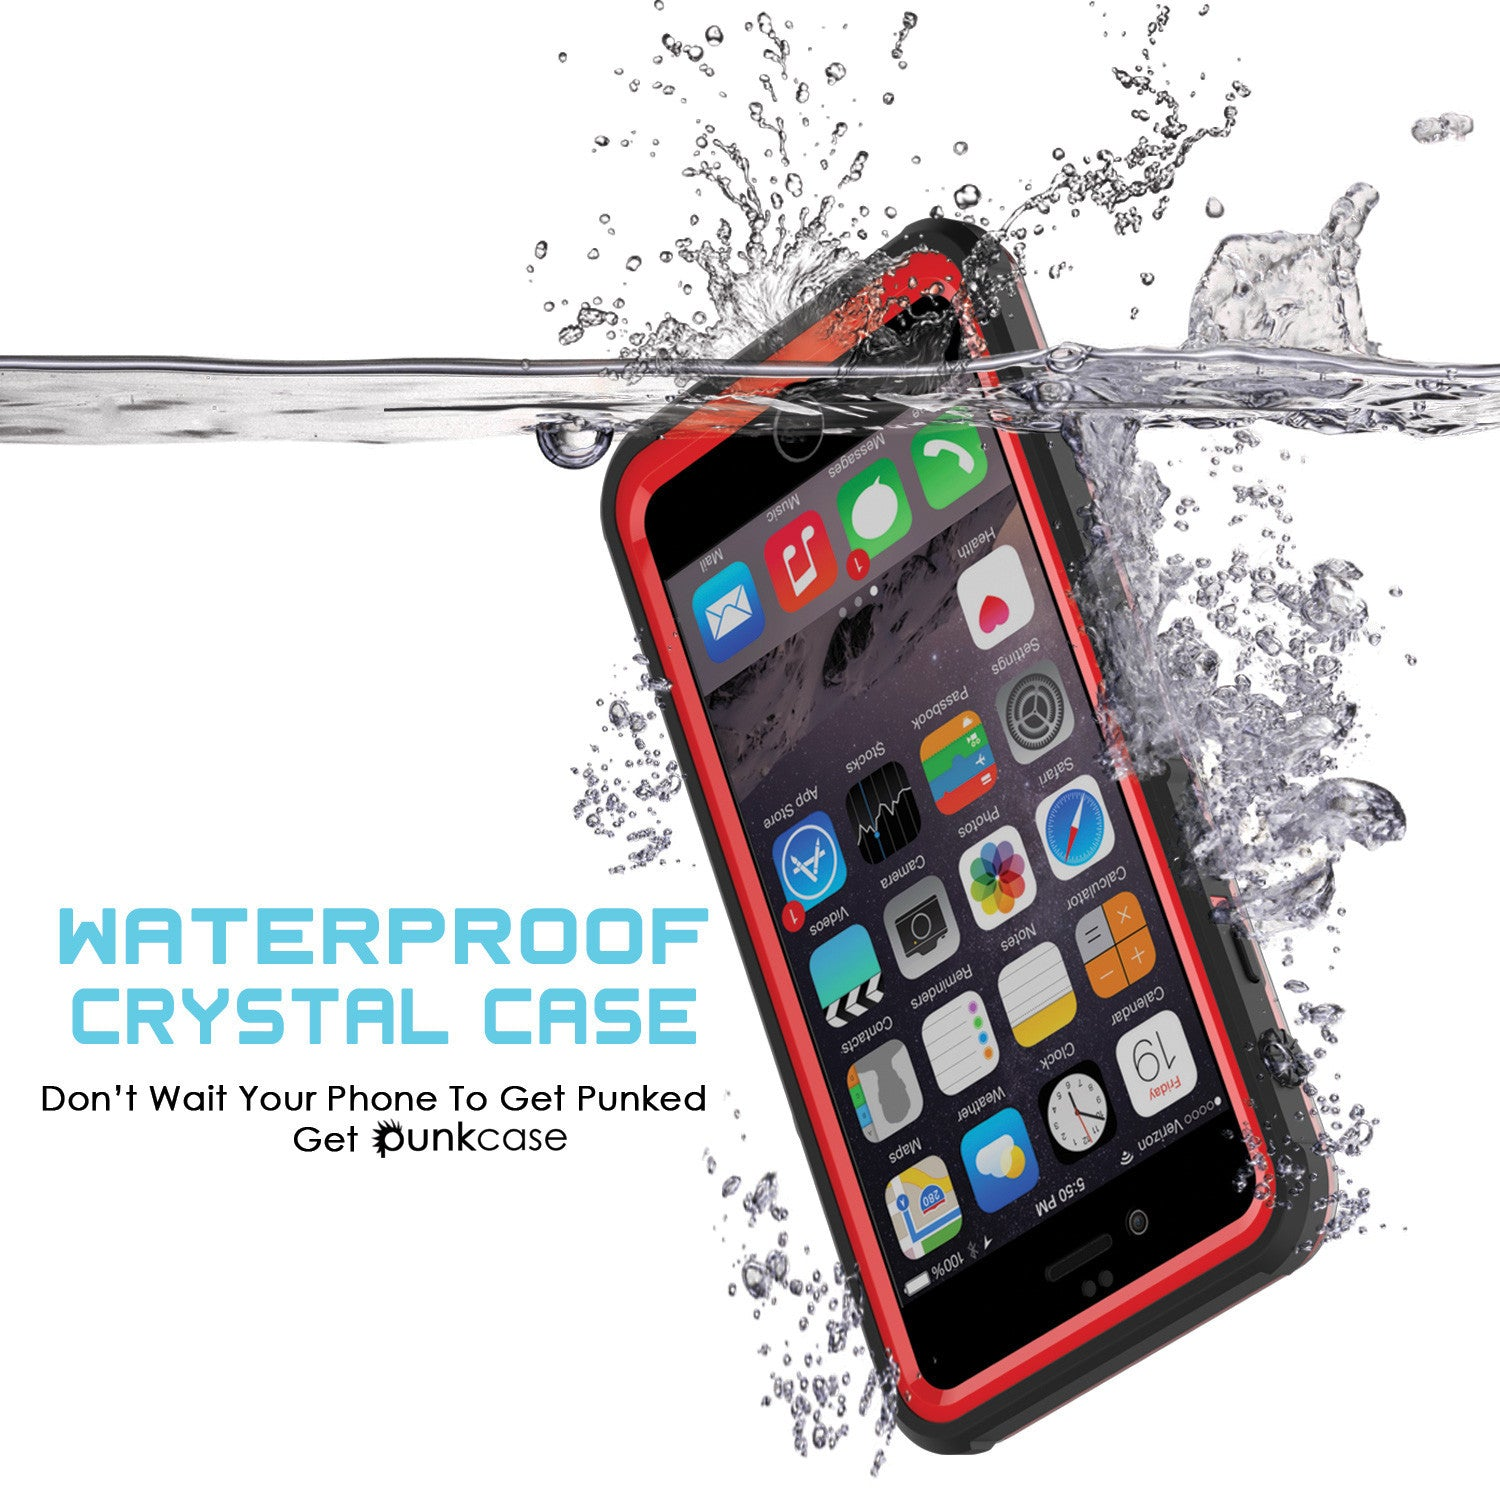 iPhone 6+/6S+ Plus Waterproof Case, PUNKcase CRYSTAL Red W/ Attached Screen Protector | Warranty